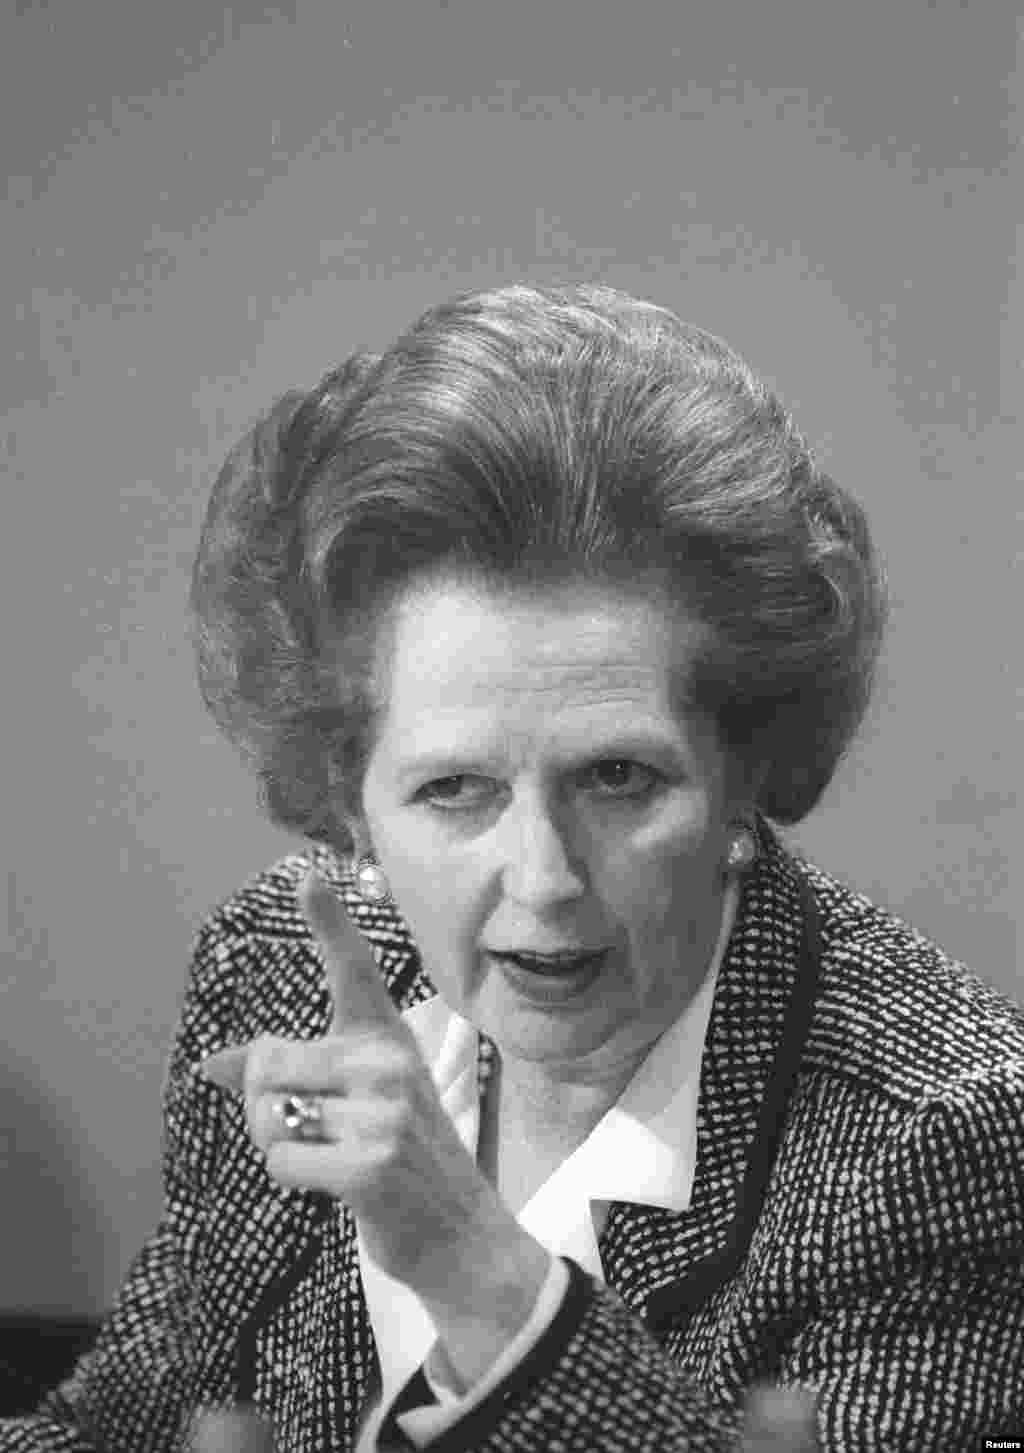 Then British Prime Minister Margaret Thatcher pointed a finger as she answers questions at a news conference in London, June 8, 1987.